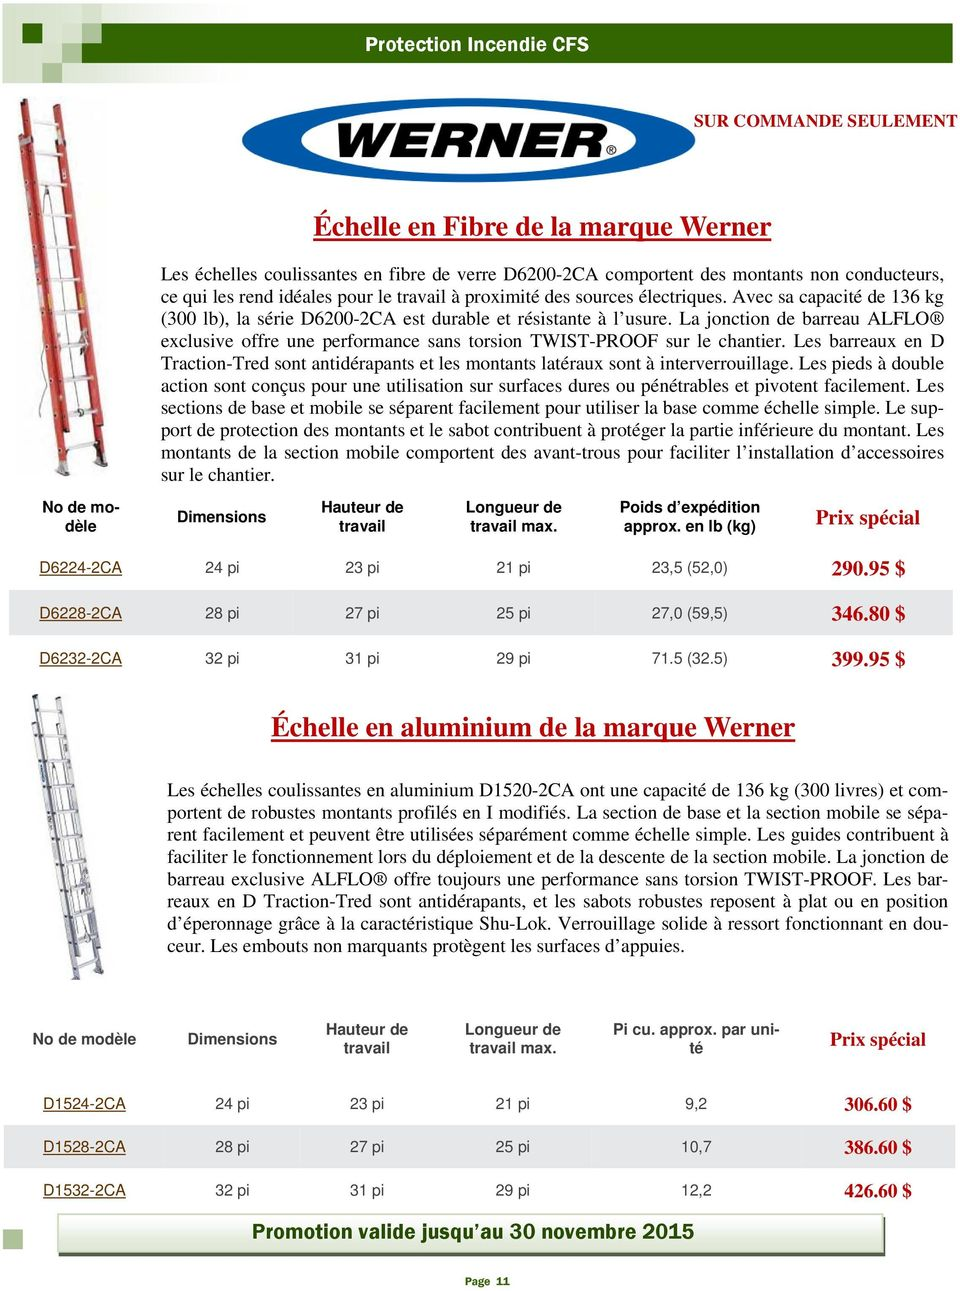 La jonction de barreau ALFLO exclusive offre une performance sans torsion TWIST-PROOF sur le chantier.